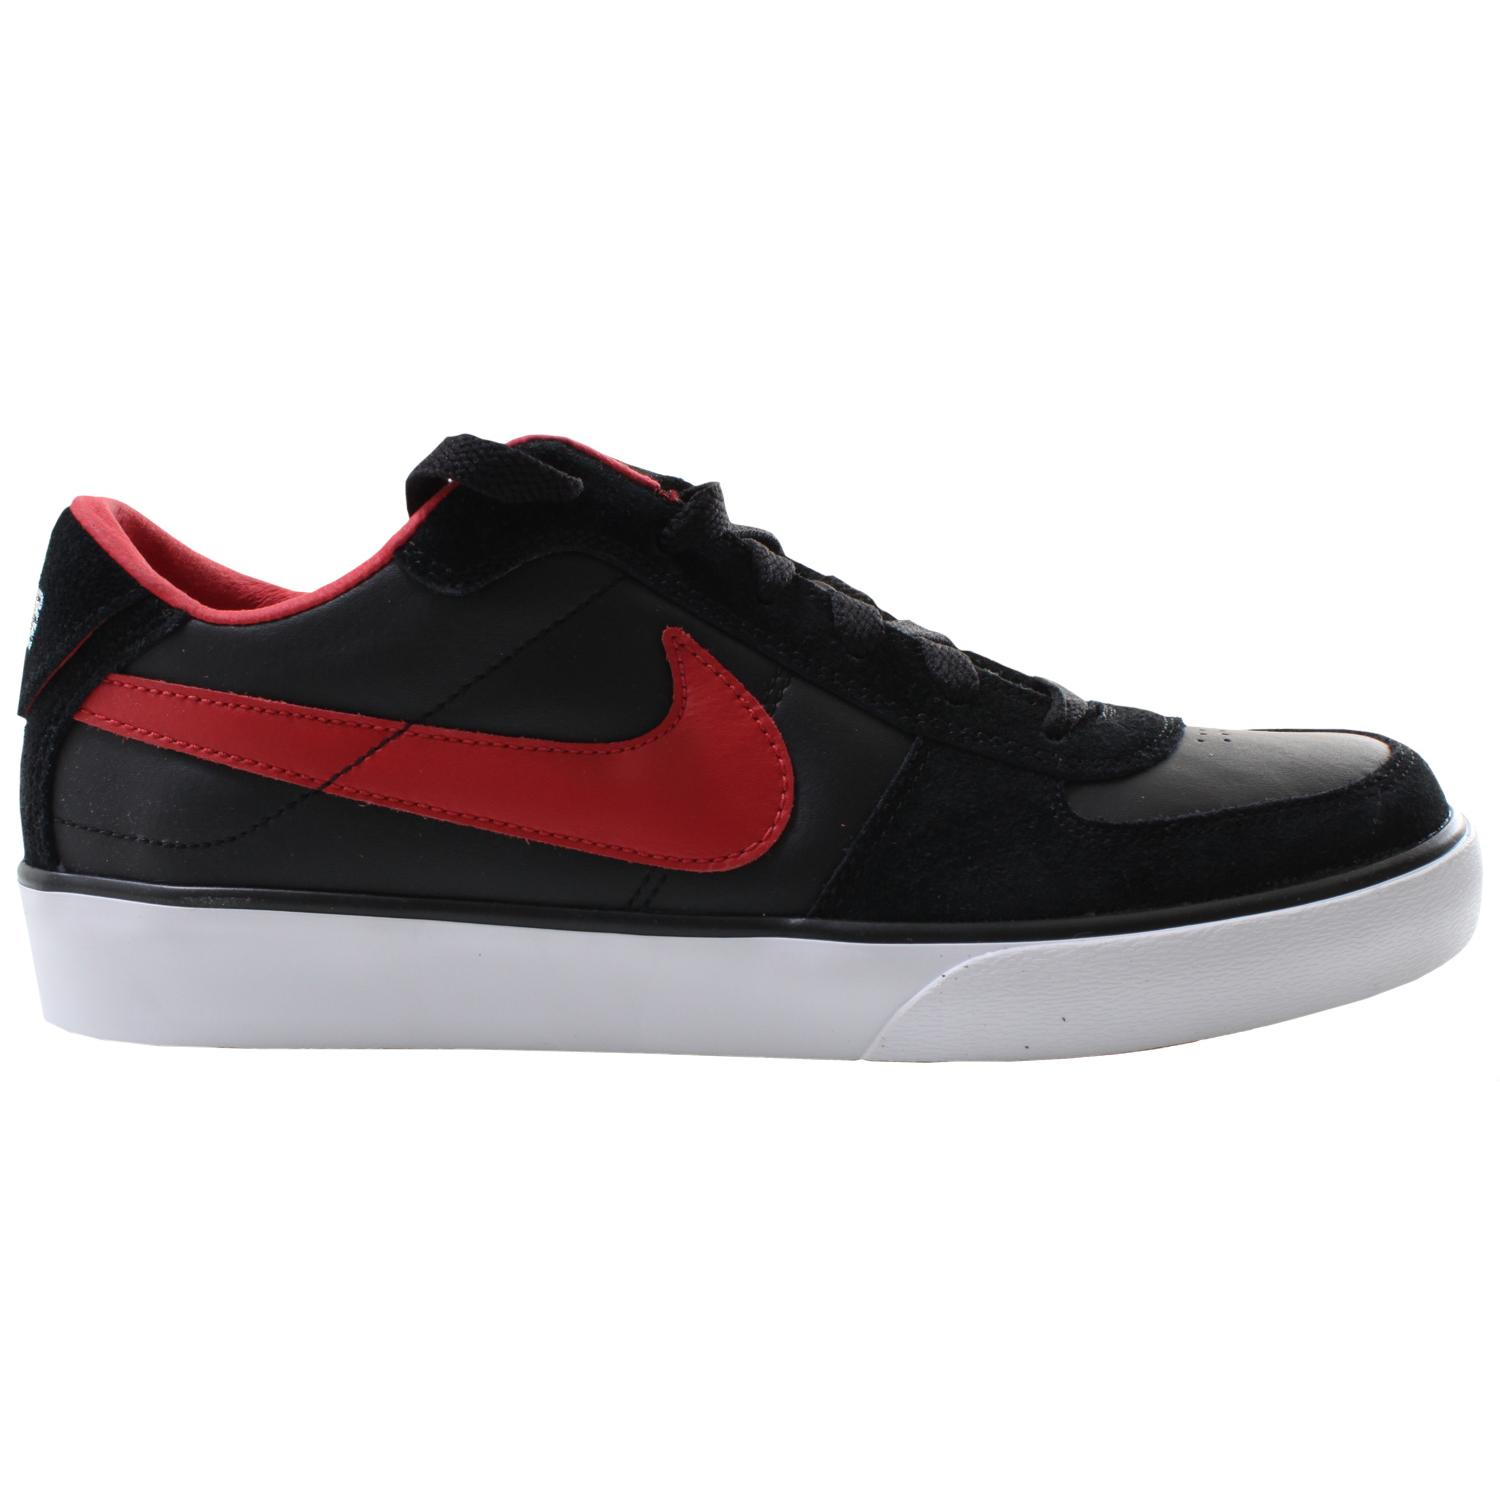 nike 6 0 mavrk low shoes. Black Bedroom Furniture Sets. Home Design Ideas